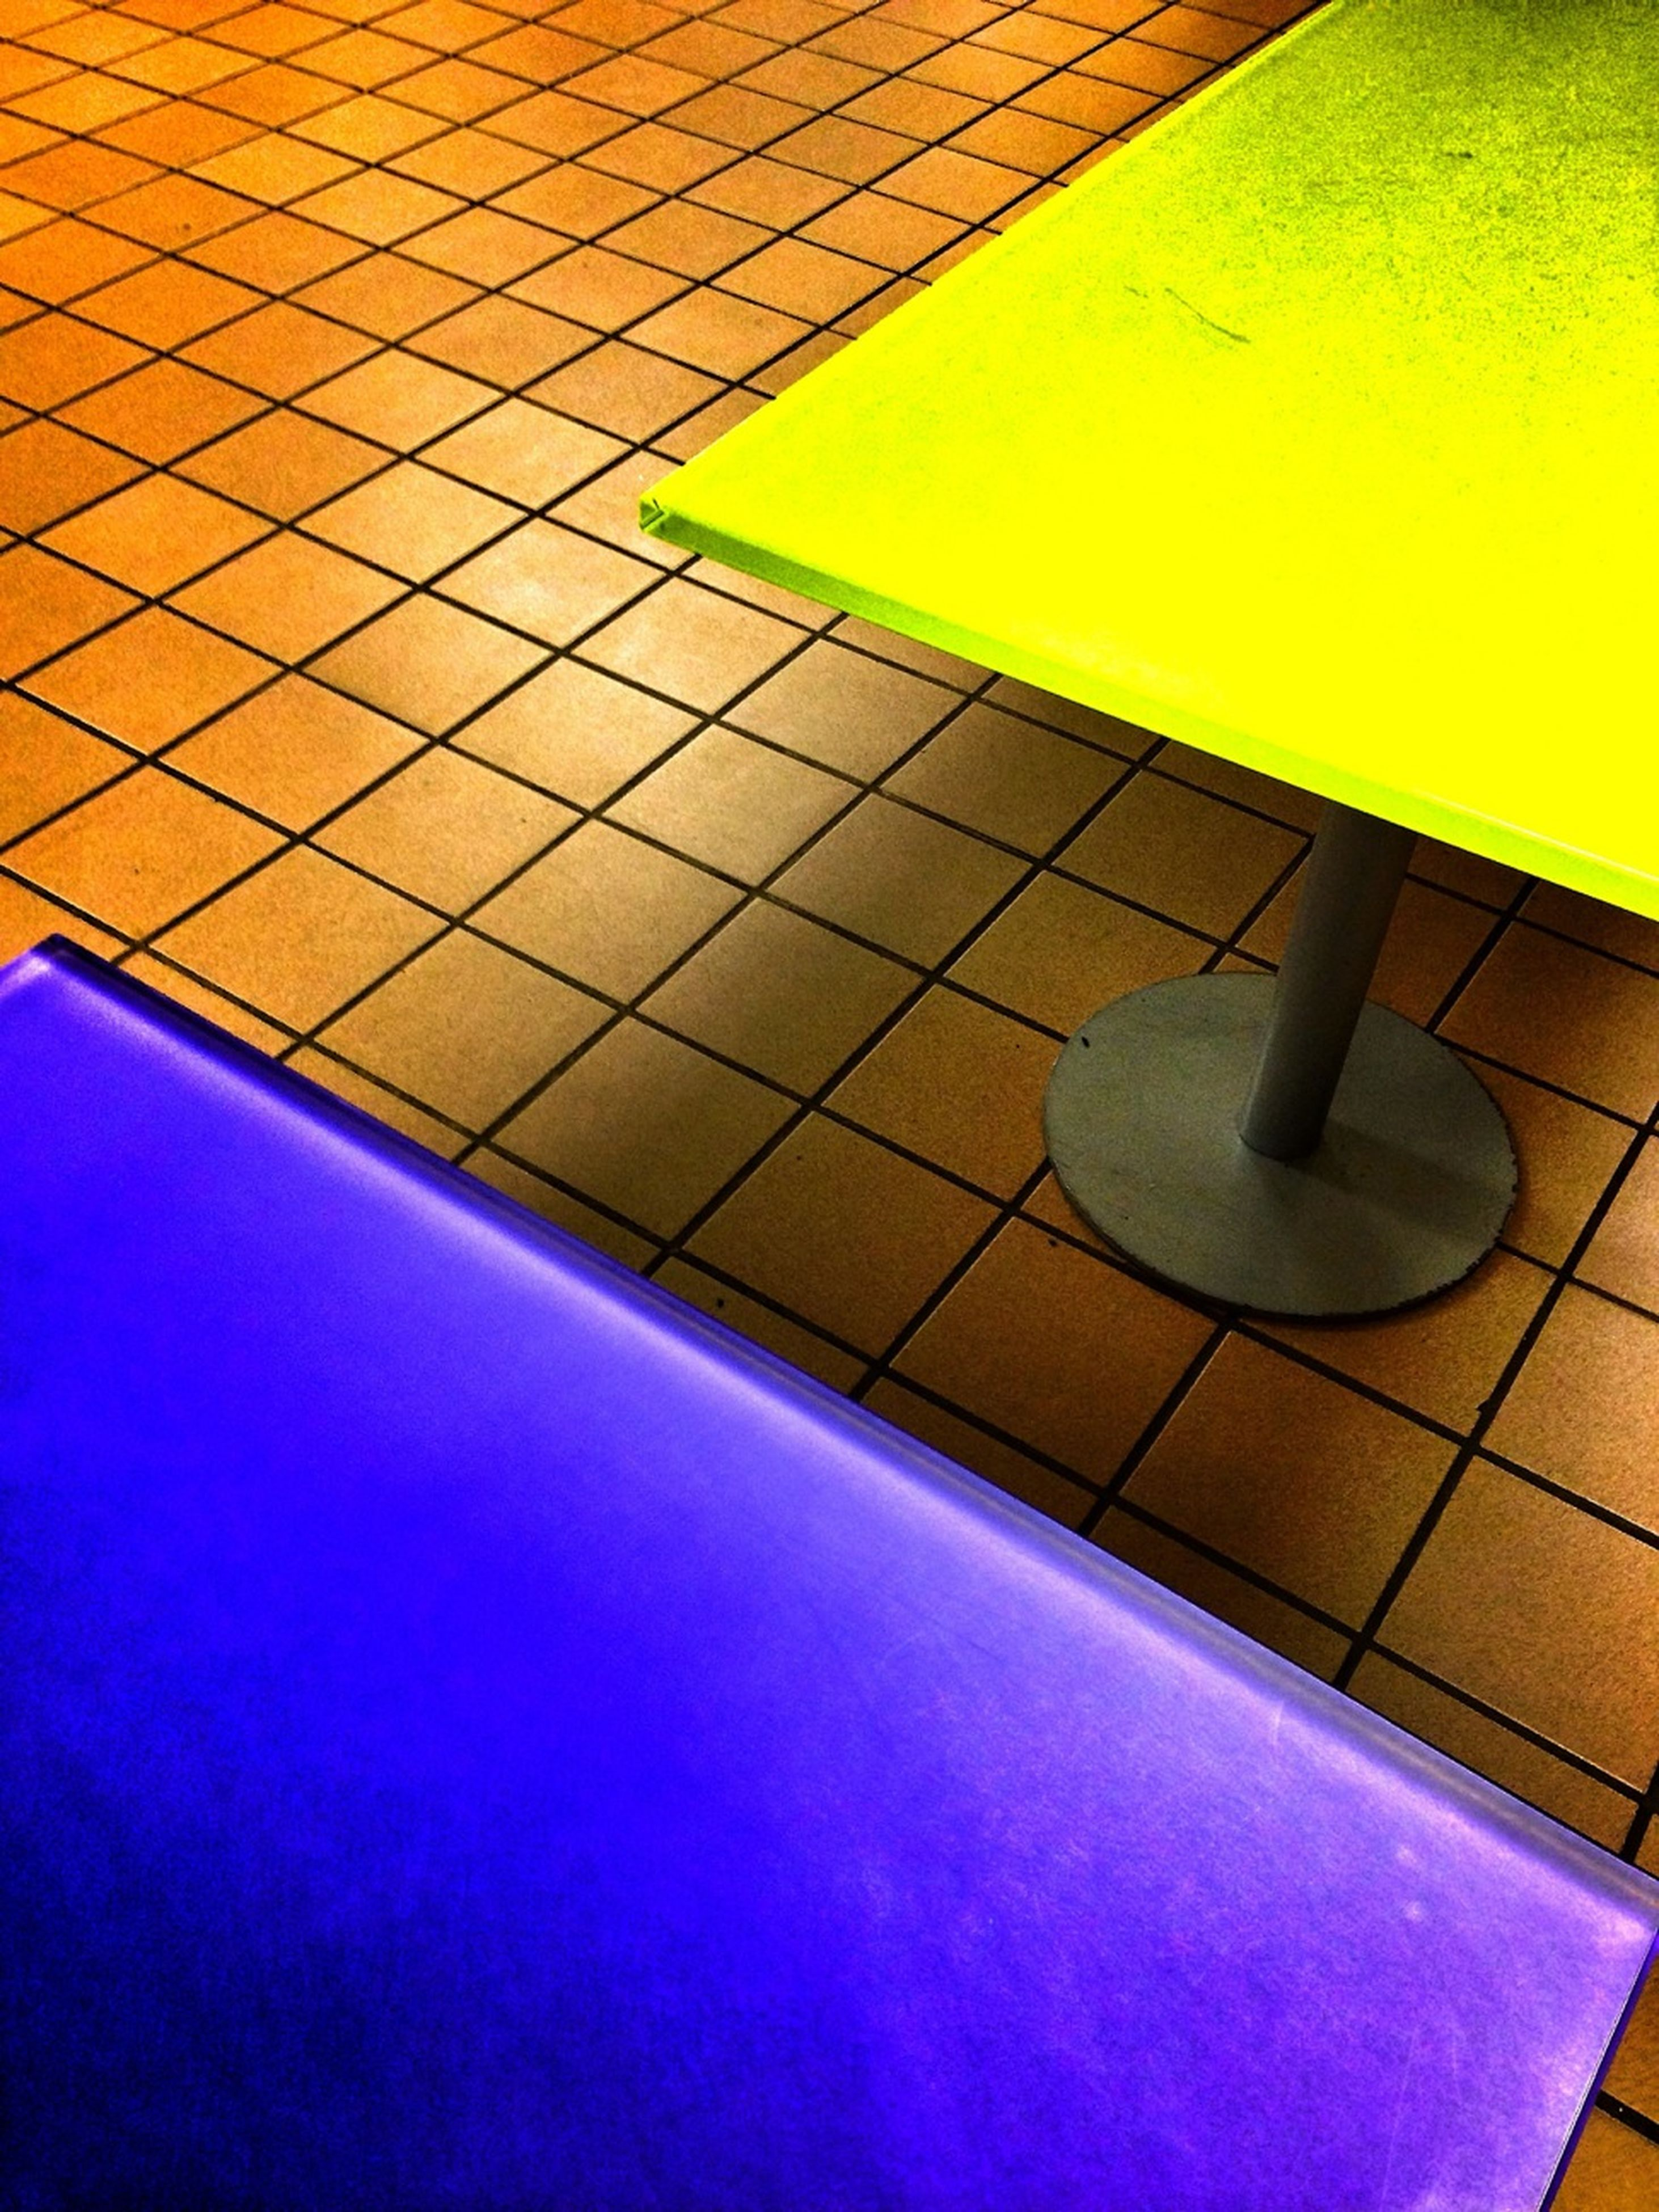 high angle view, blue, pattern, built structure, architecture, shadow, yellow, swimming pool, tile, building exterior, multi colored, indoors, tiled floor, no people, day, wall - building feature, sunlight, empty, geometric shape